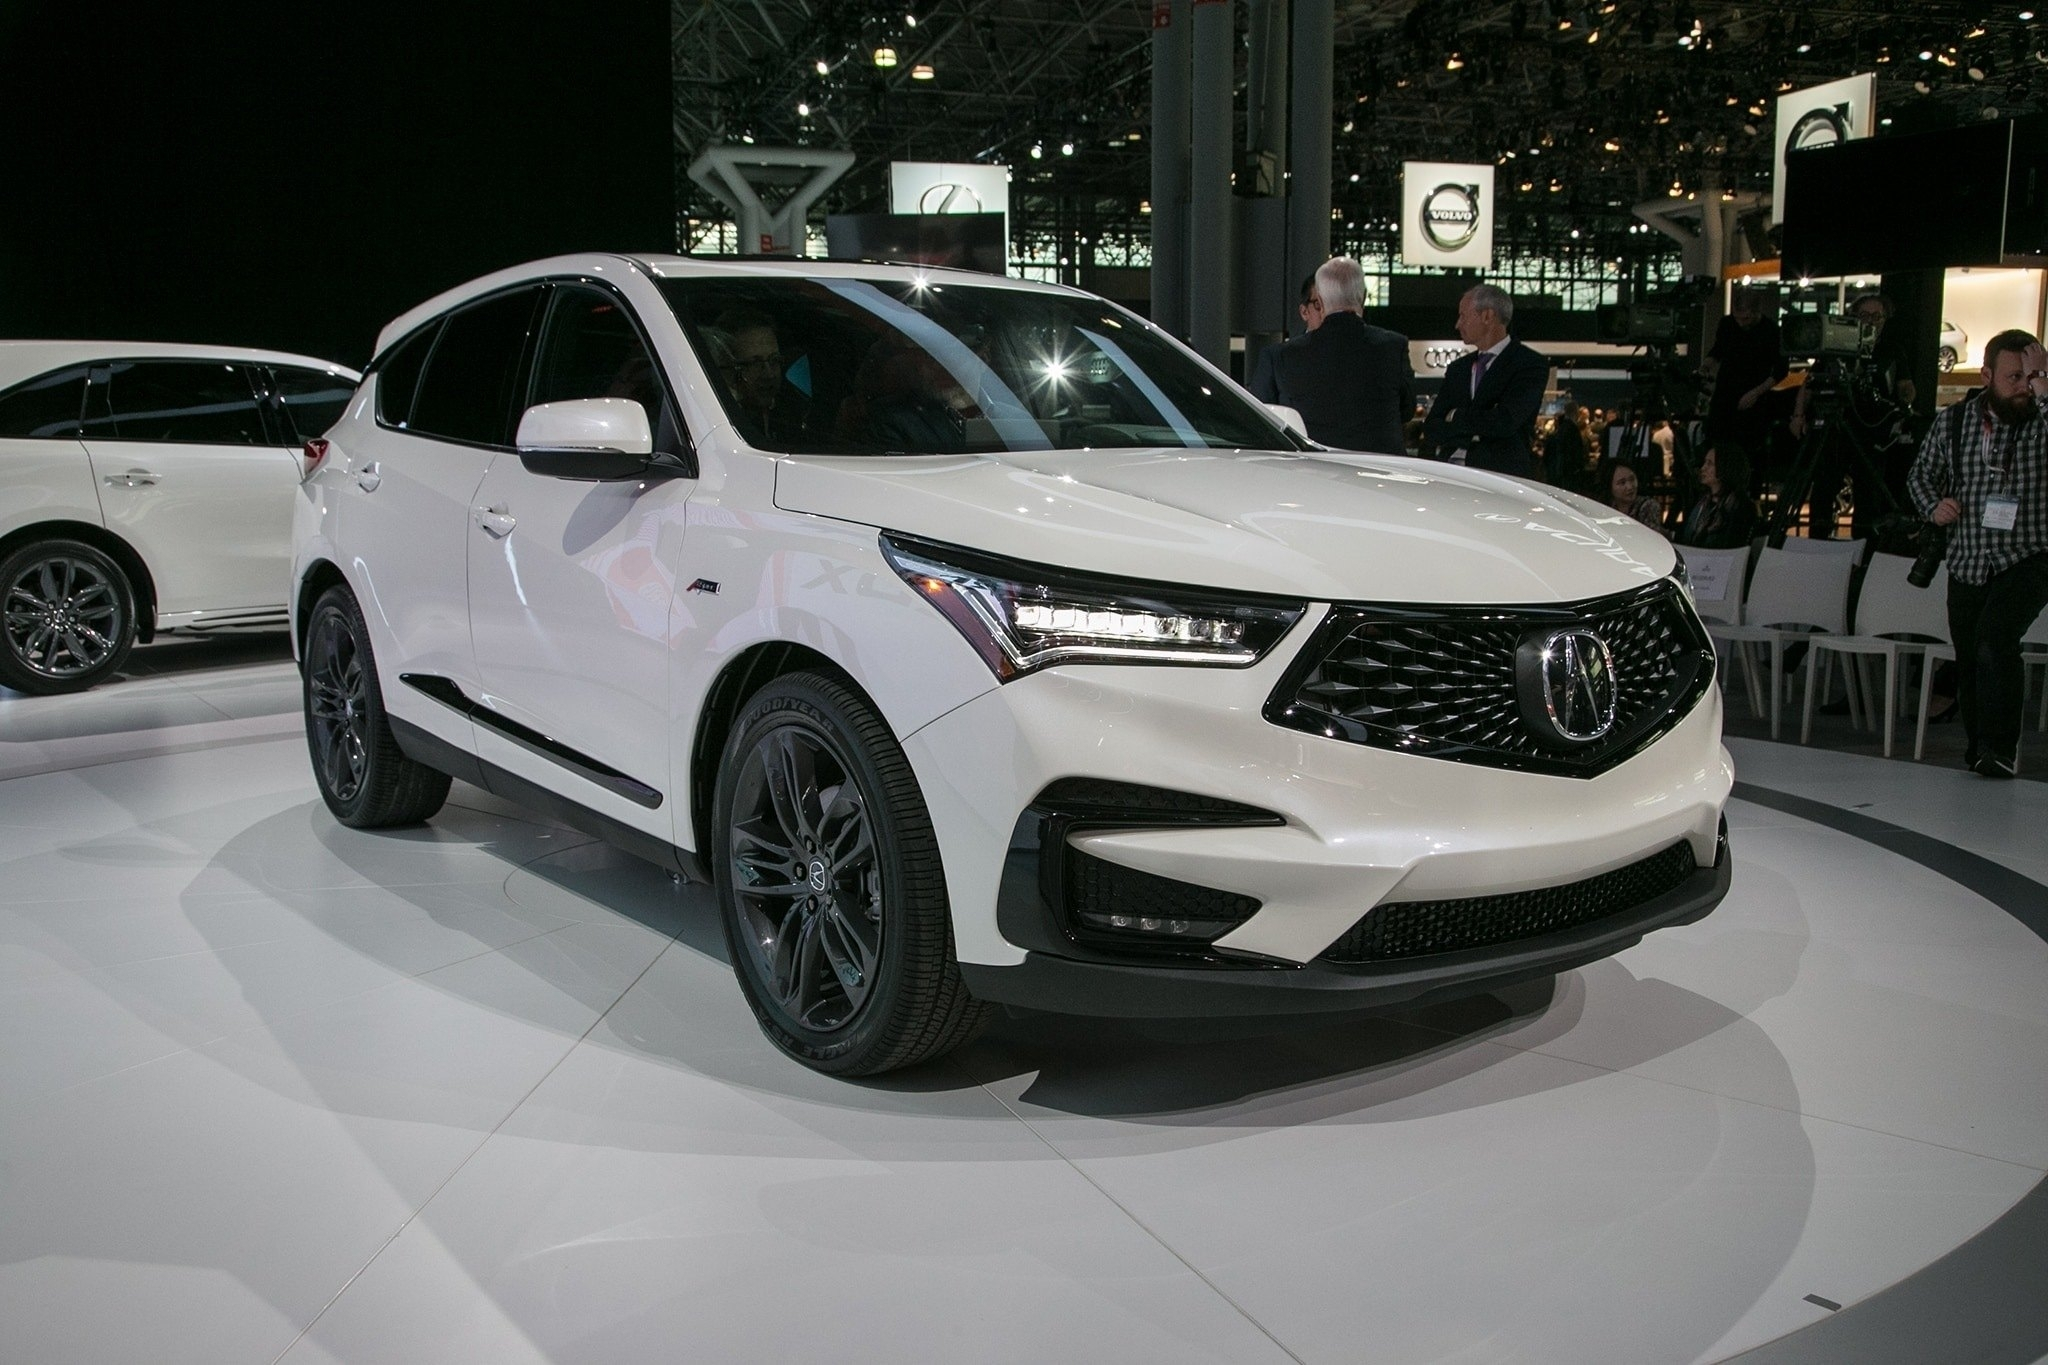 54 New 2019 Acura Mdx Rumors Rumors